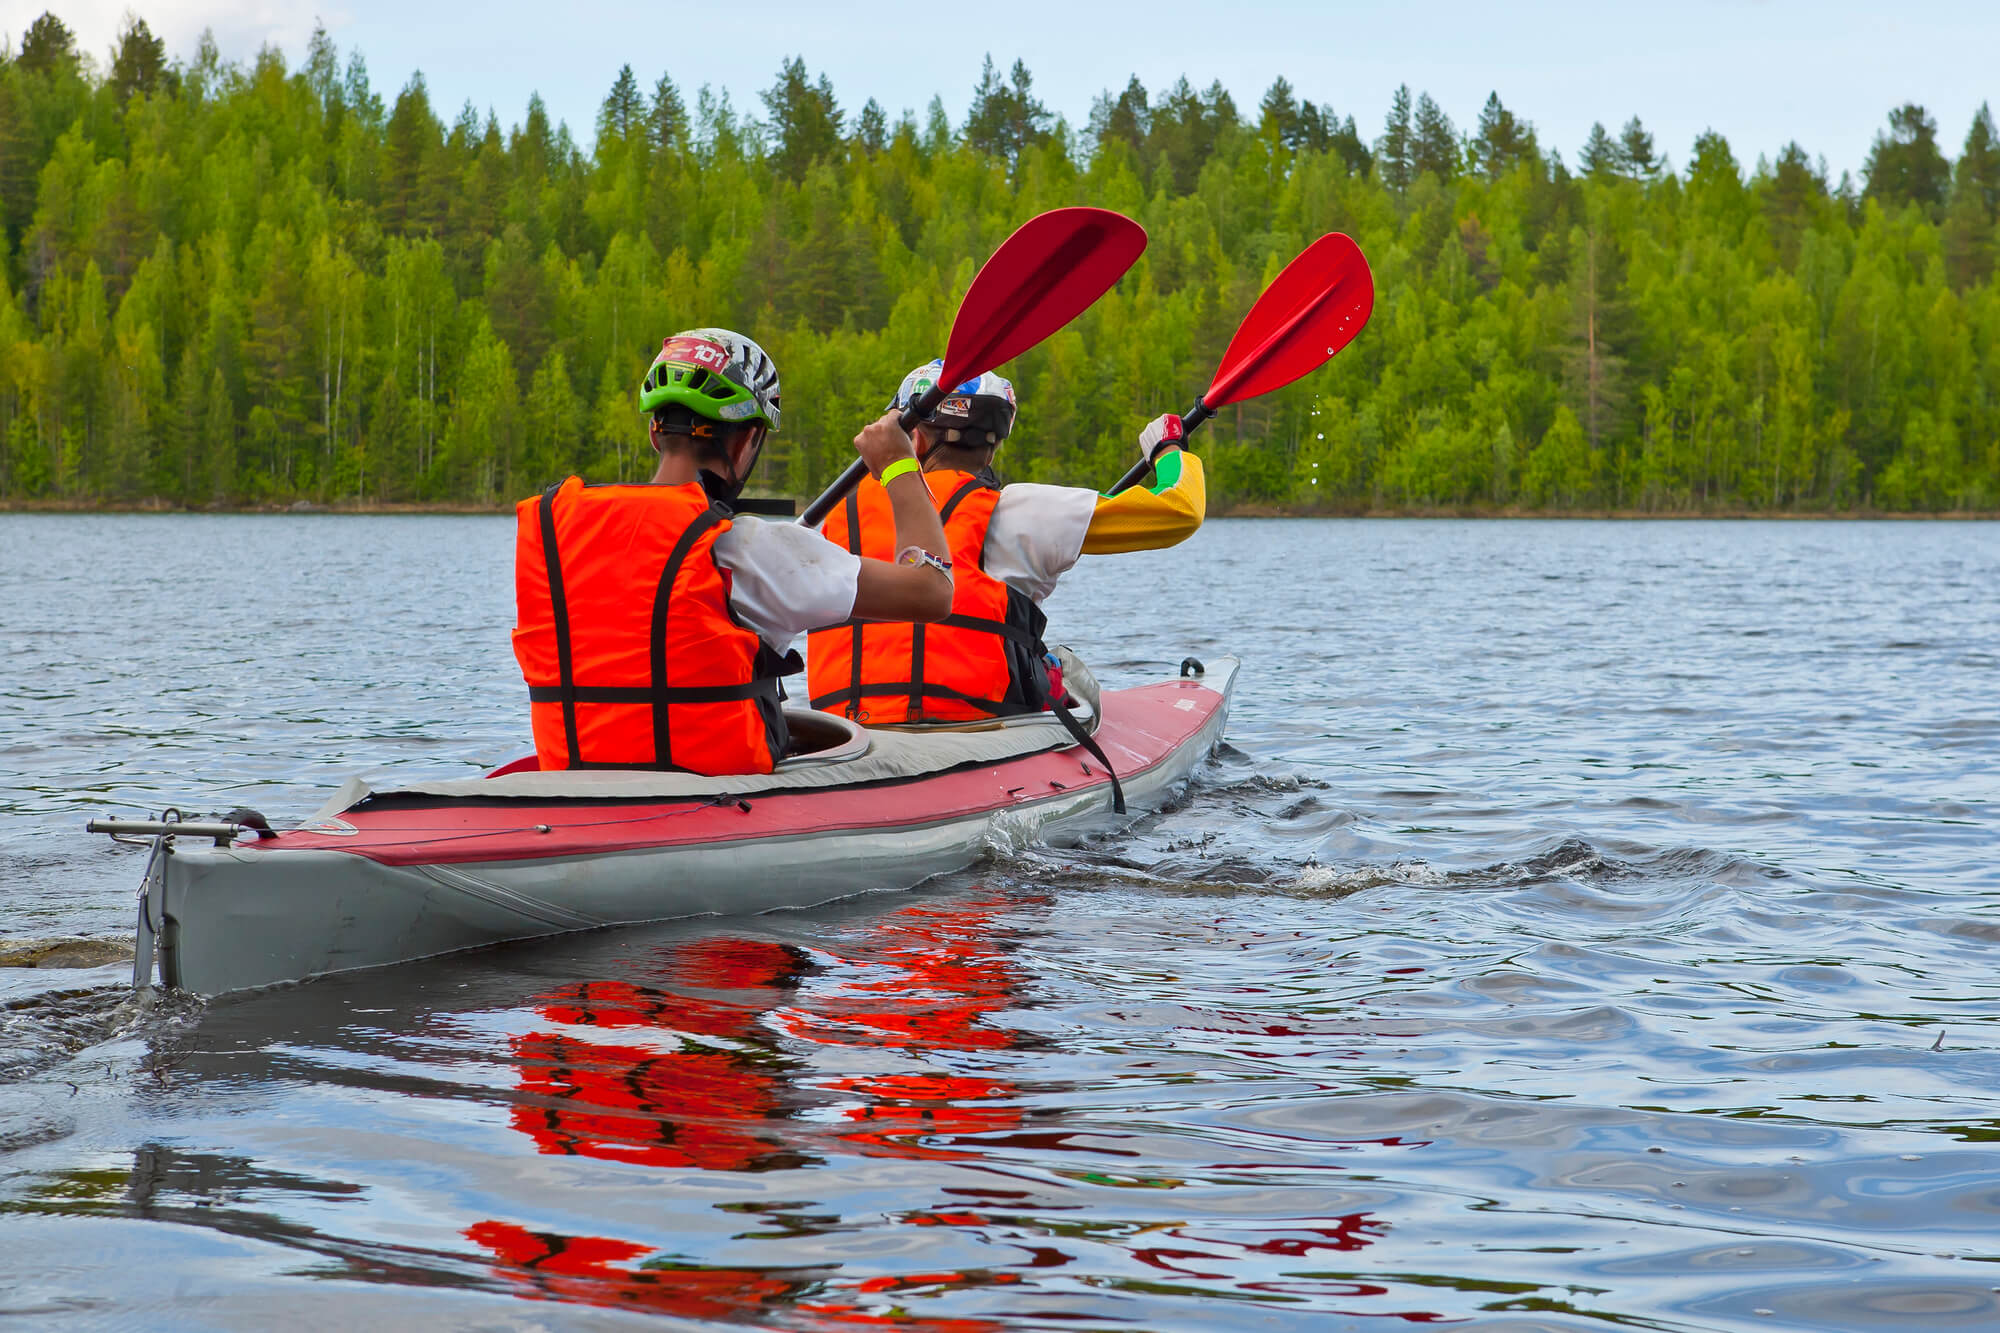 Tandem Kayaking Canoeing With Life Jackets